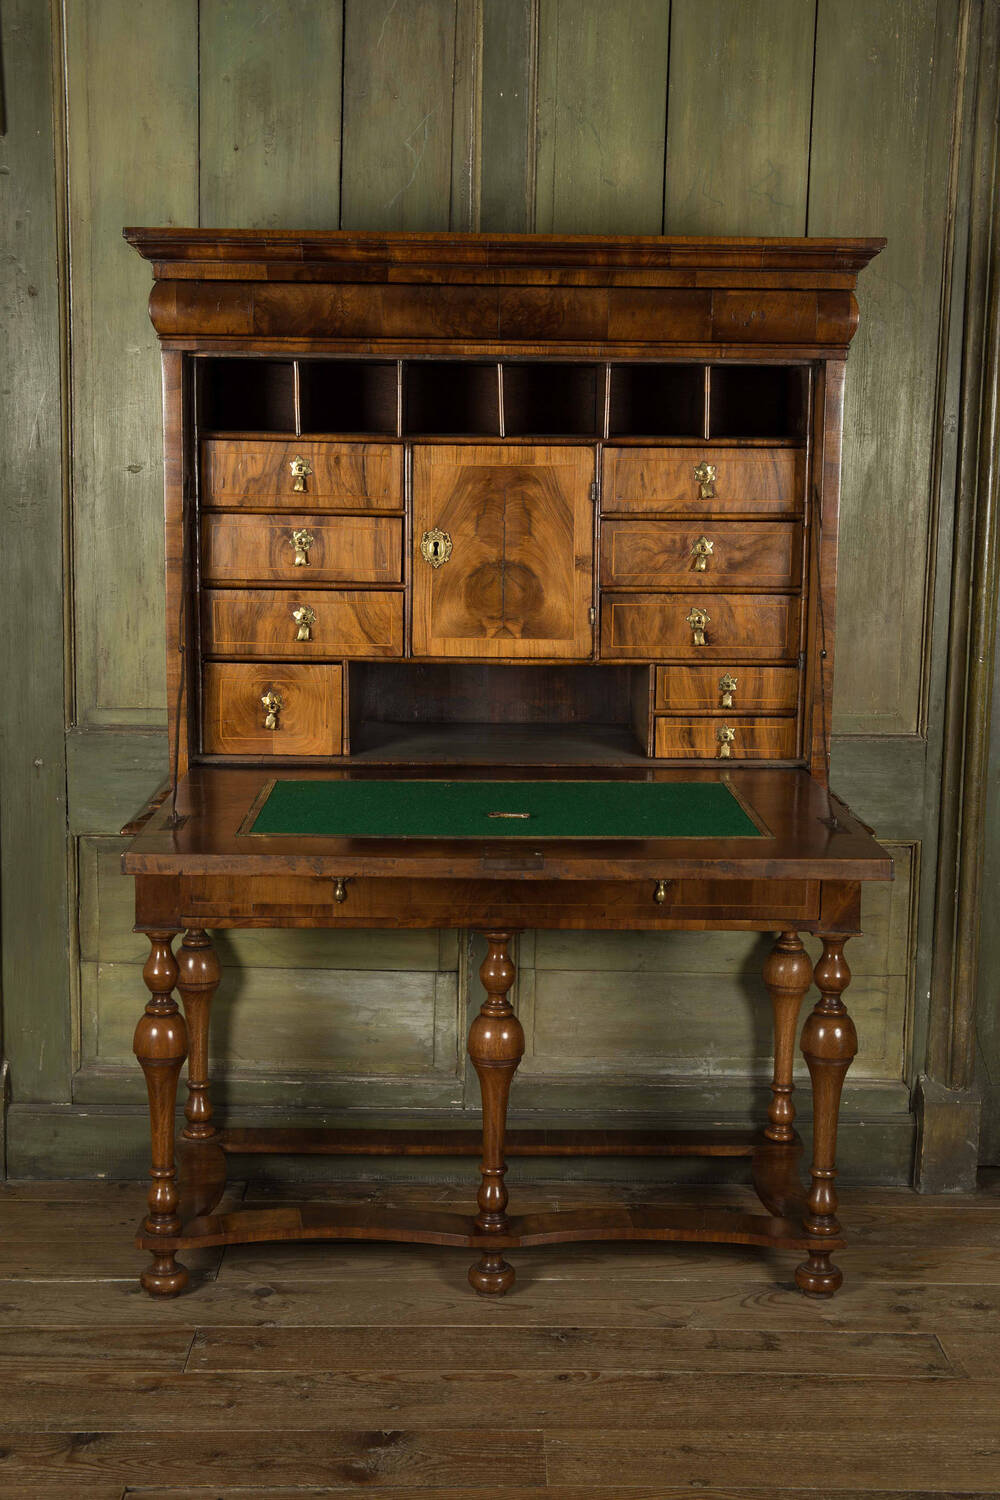 A polished walnut writing desk, opened out to reveal lots of drawers and storage slots inside. The desk has a felted inlay. It has six spindle legs.